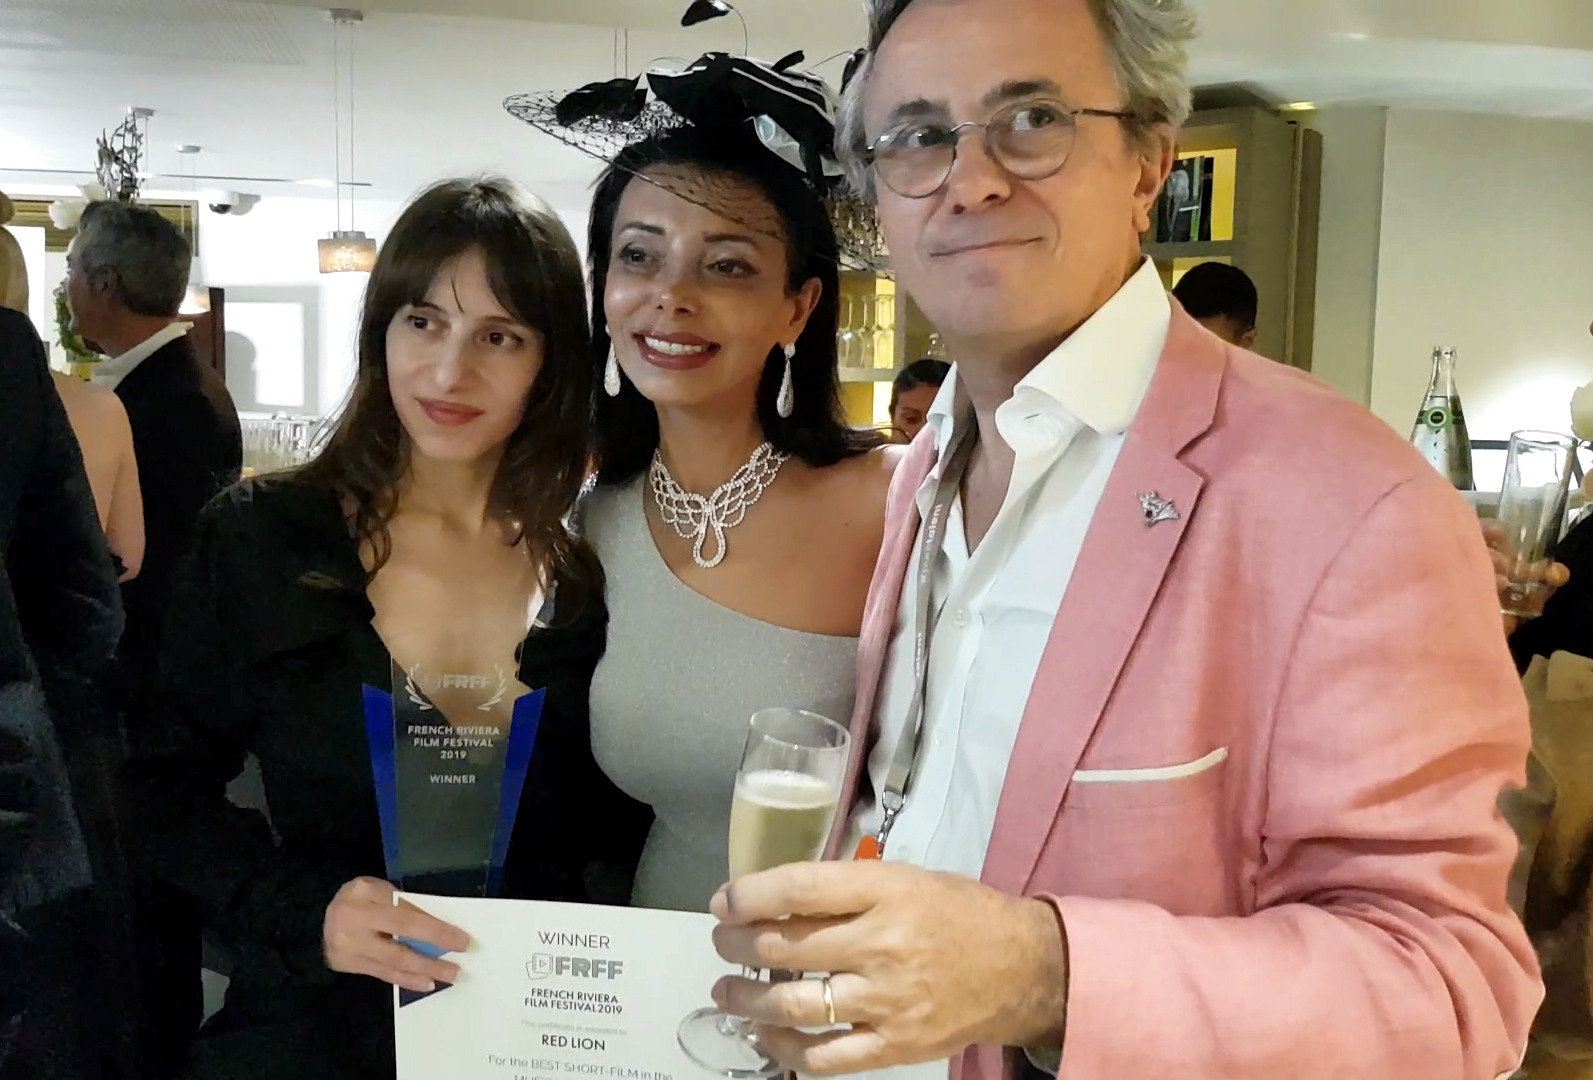 Director Olivia Hadjioannou, Hollywood actress and UK beauty queen Layla Najafe and Bruno Chatelin founder filmfestivals.com at the French Riviera Film Festival in Cannes